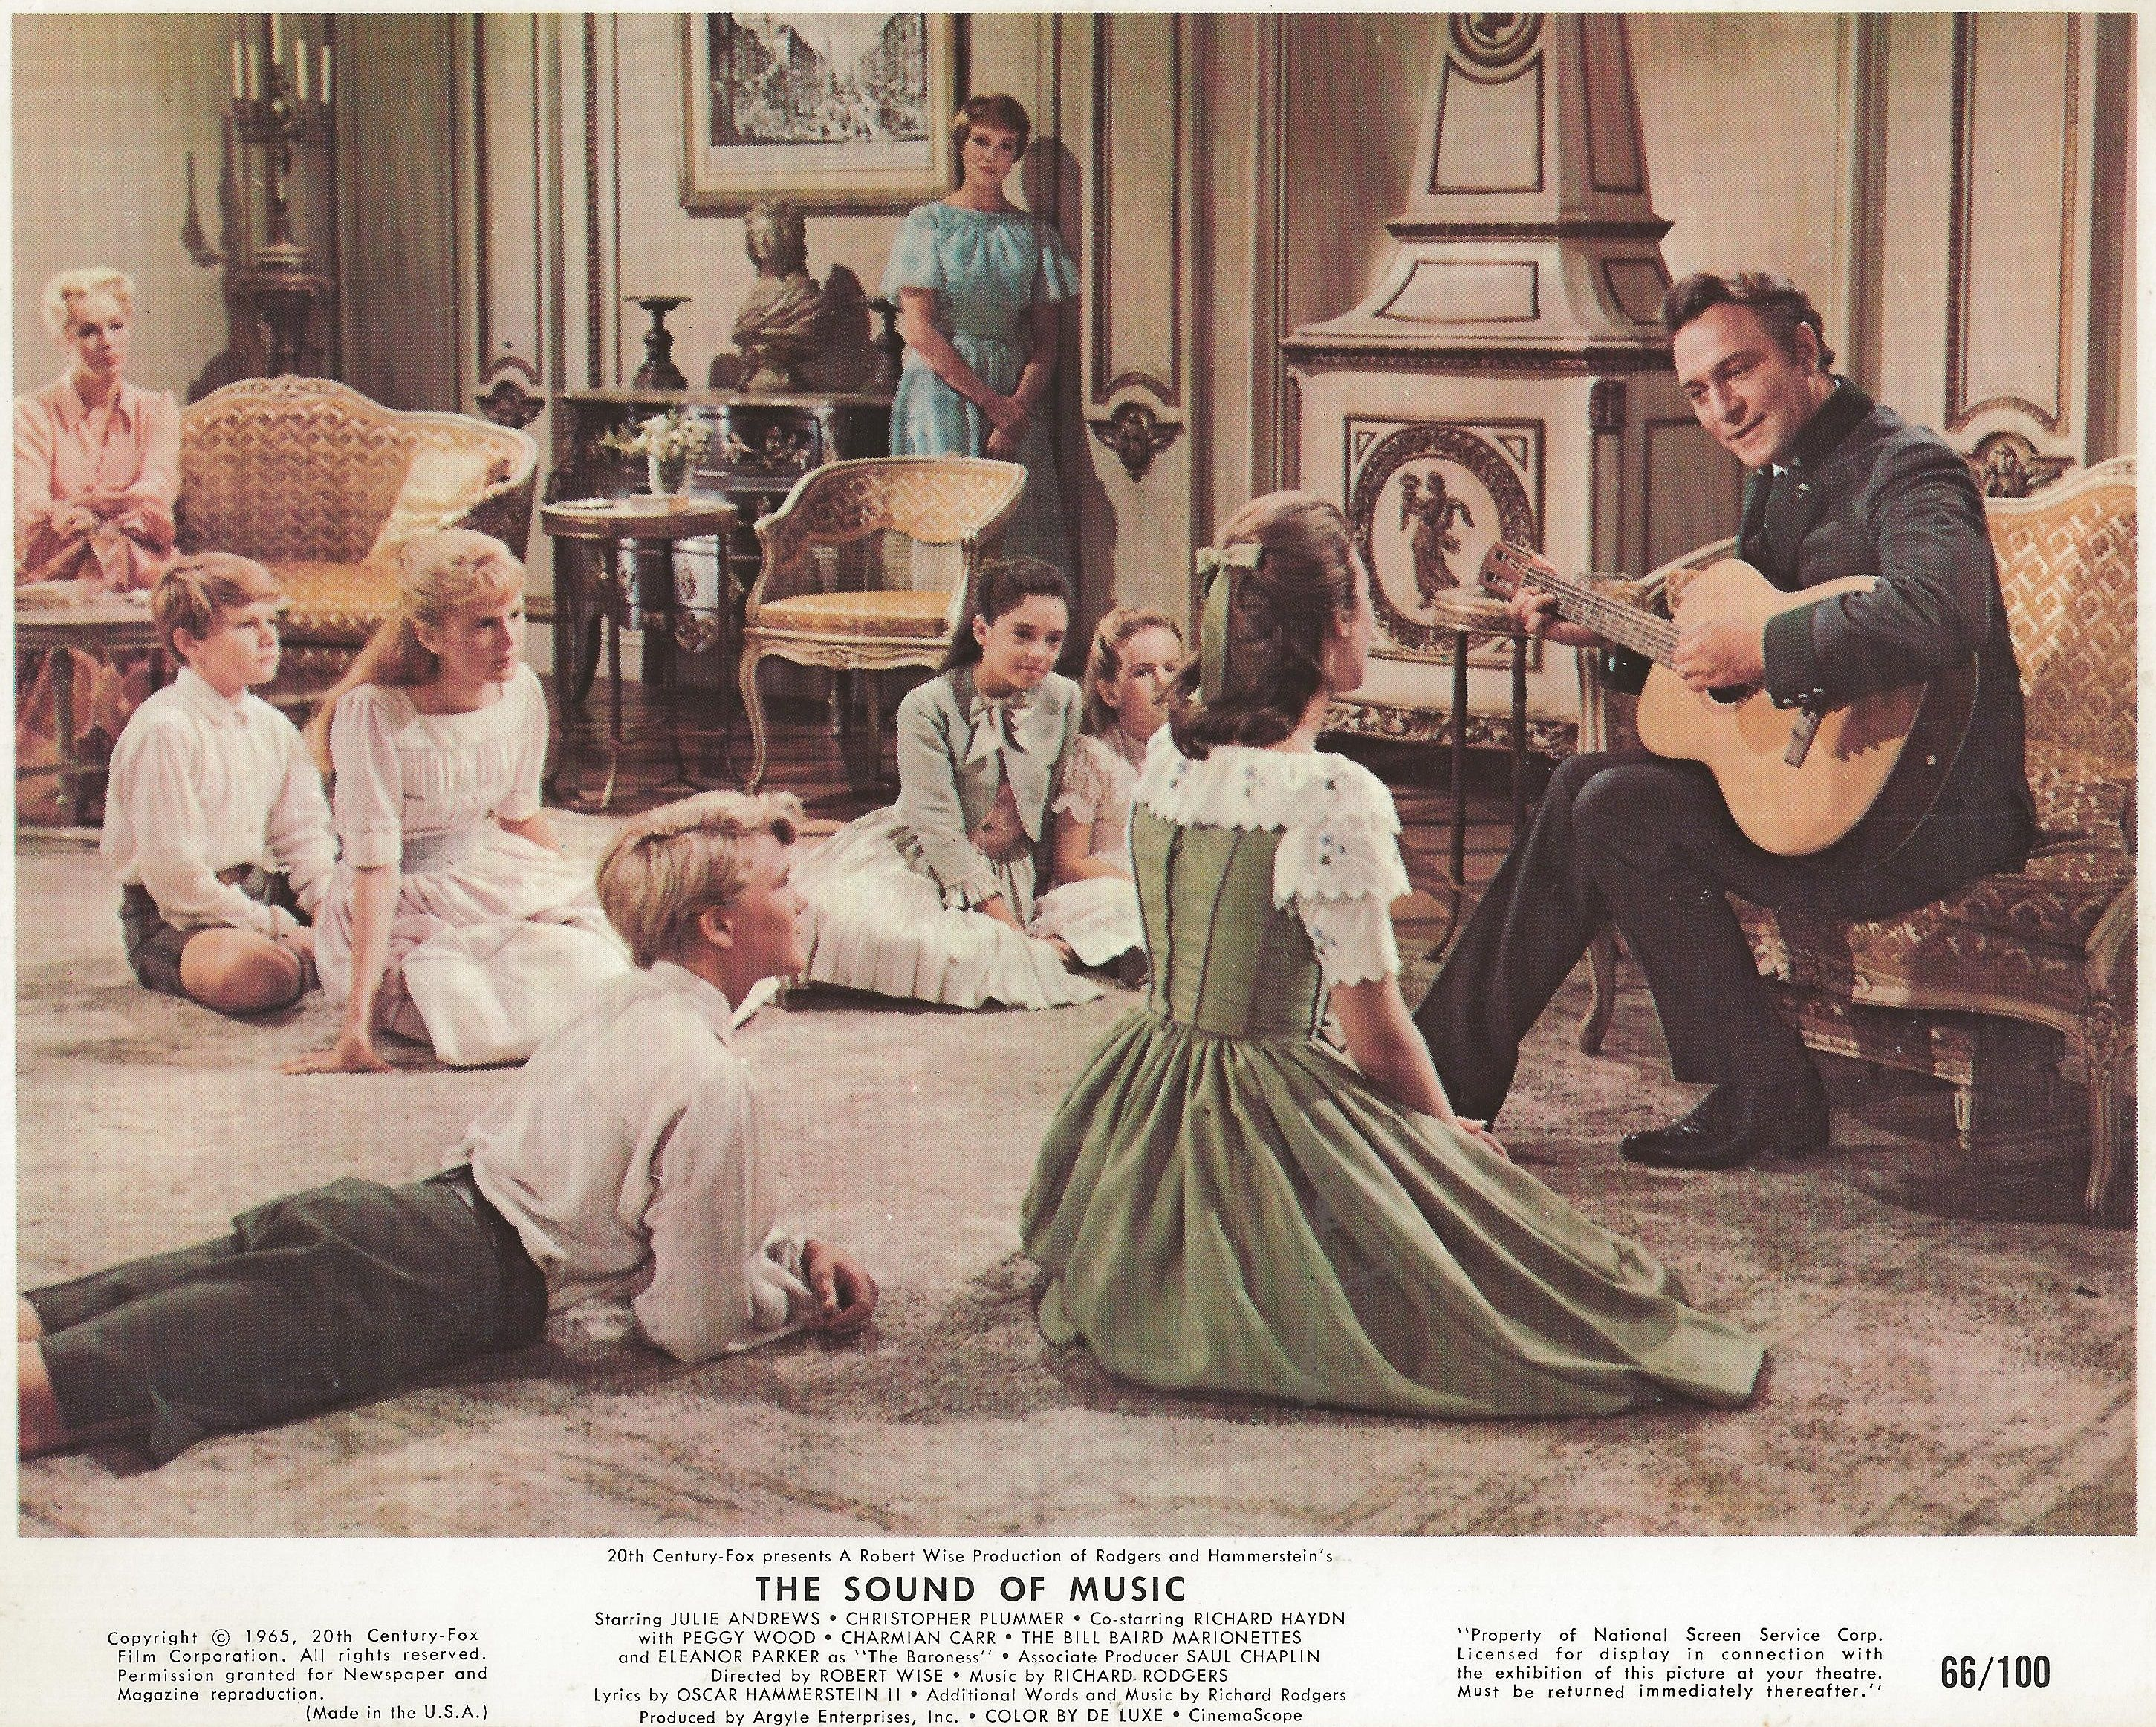 The sound of music 1965 lobby card lobby cards movie posters edelweiss edelweiss every morning you greet me small and white clean and bright you look happy to meet me blossom of snow may you bloom and grow bloom m4hsunfo